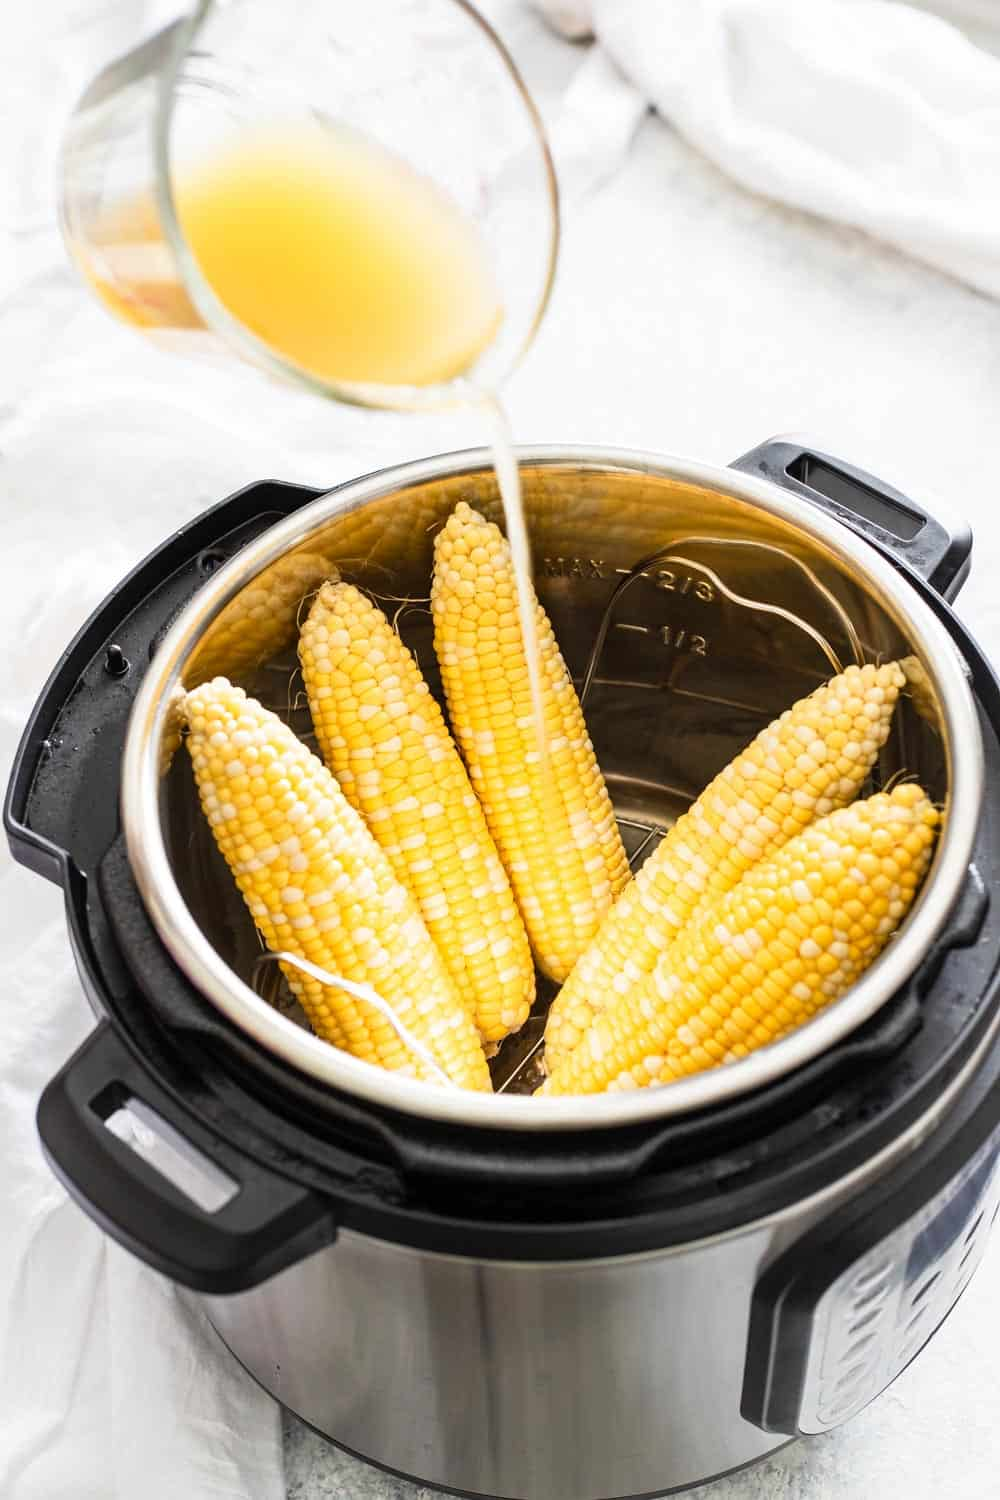 Glass measuring cup pouring broth over corn on the cob in an instant pot on light gray surface